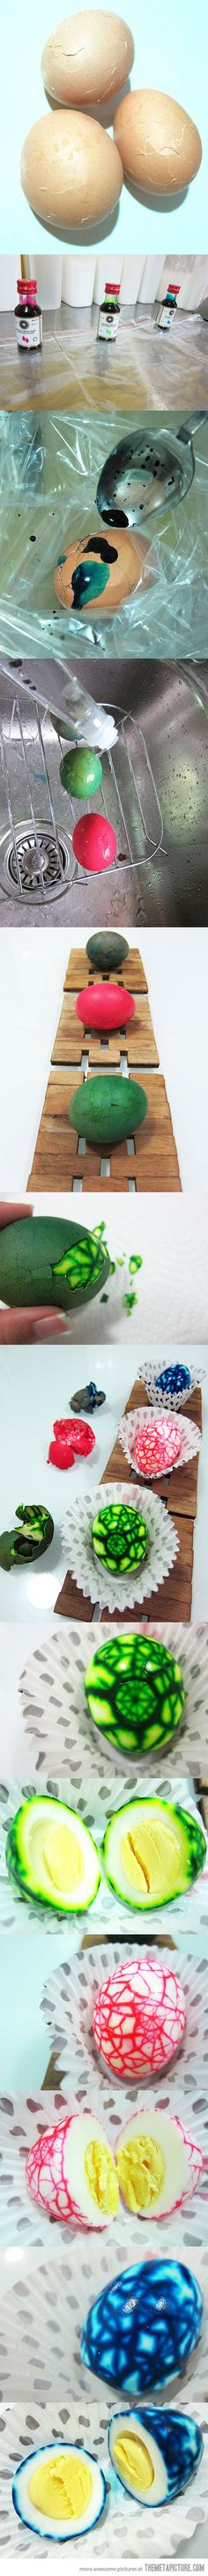 Beautiful Marbled Easter Eggs for the #SpringTable